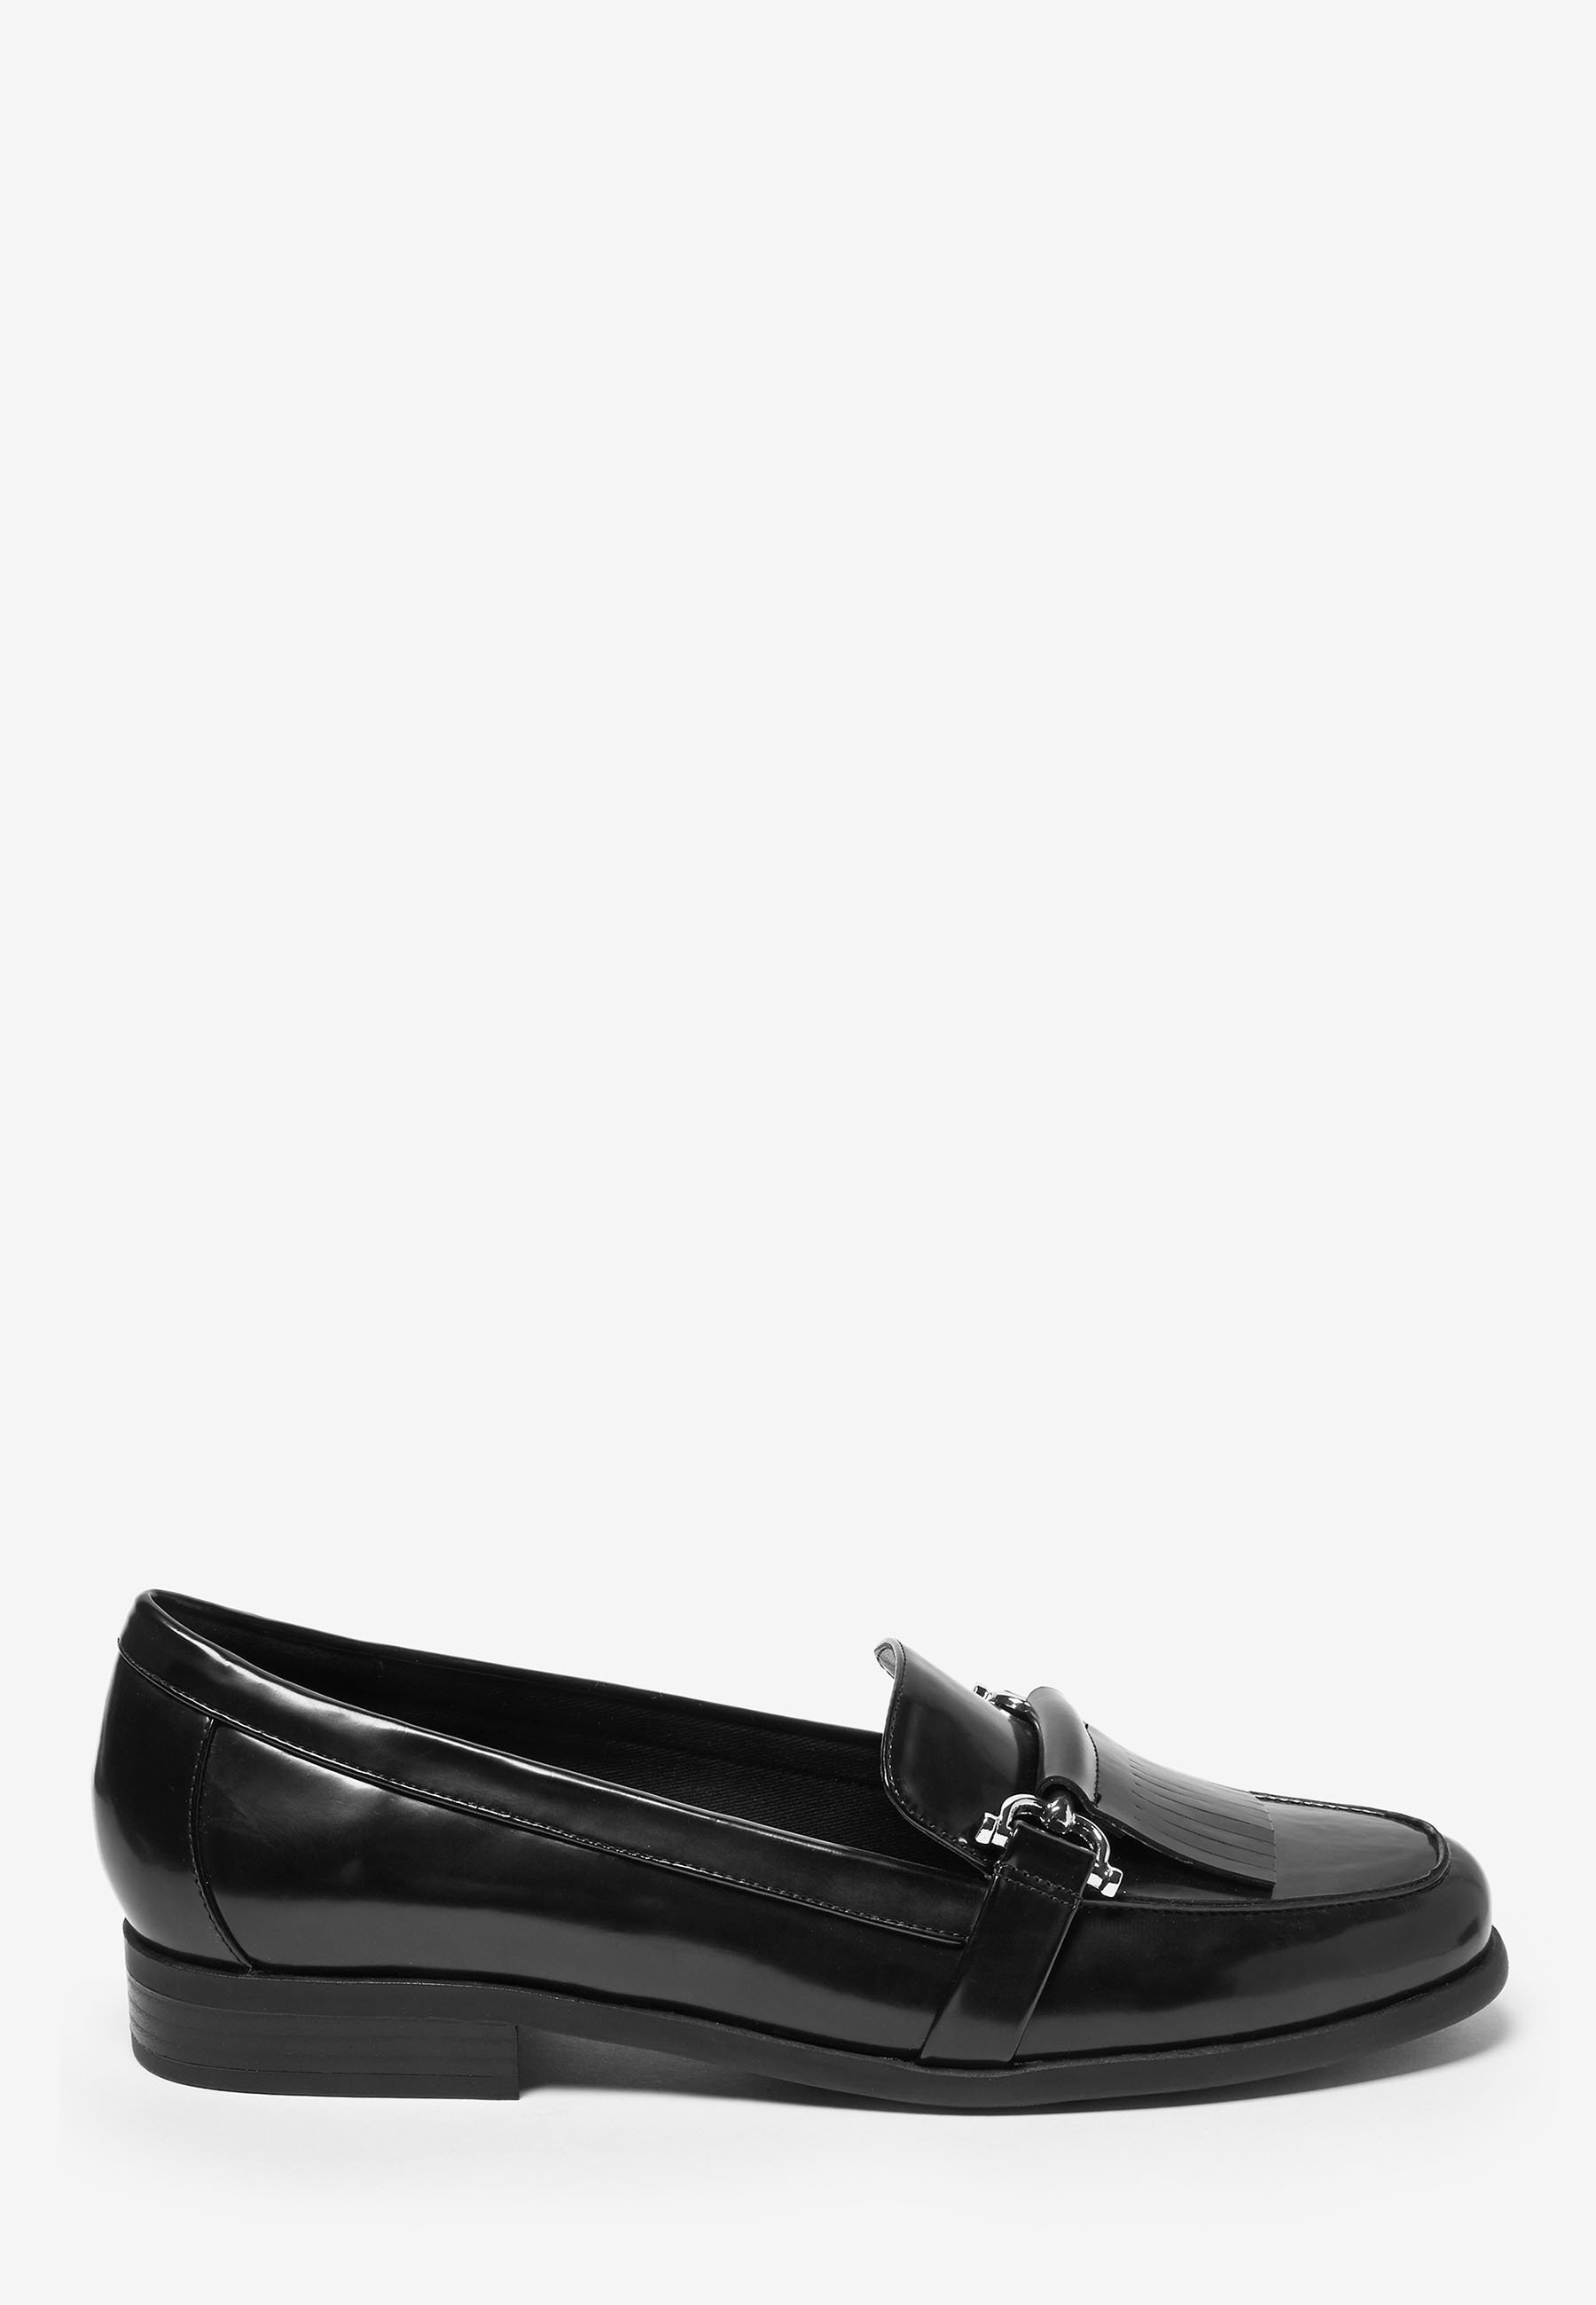 Next Navy Hardware Loafers - Półbuty Wsuwane Black